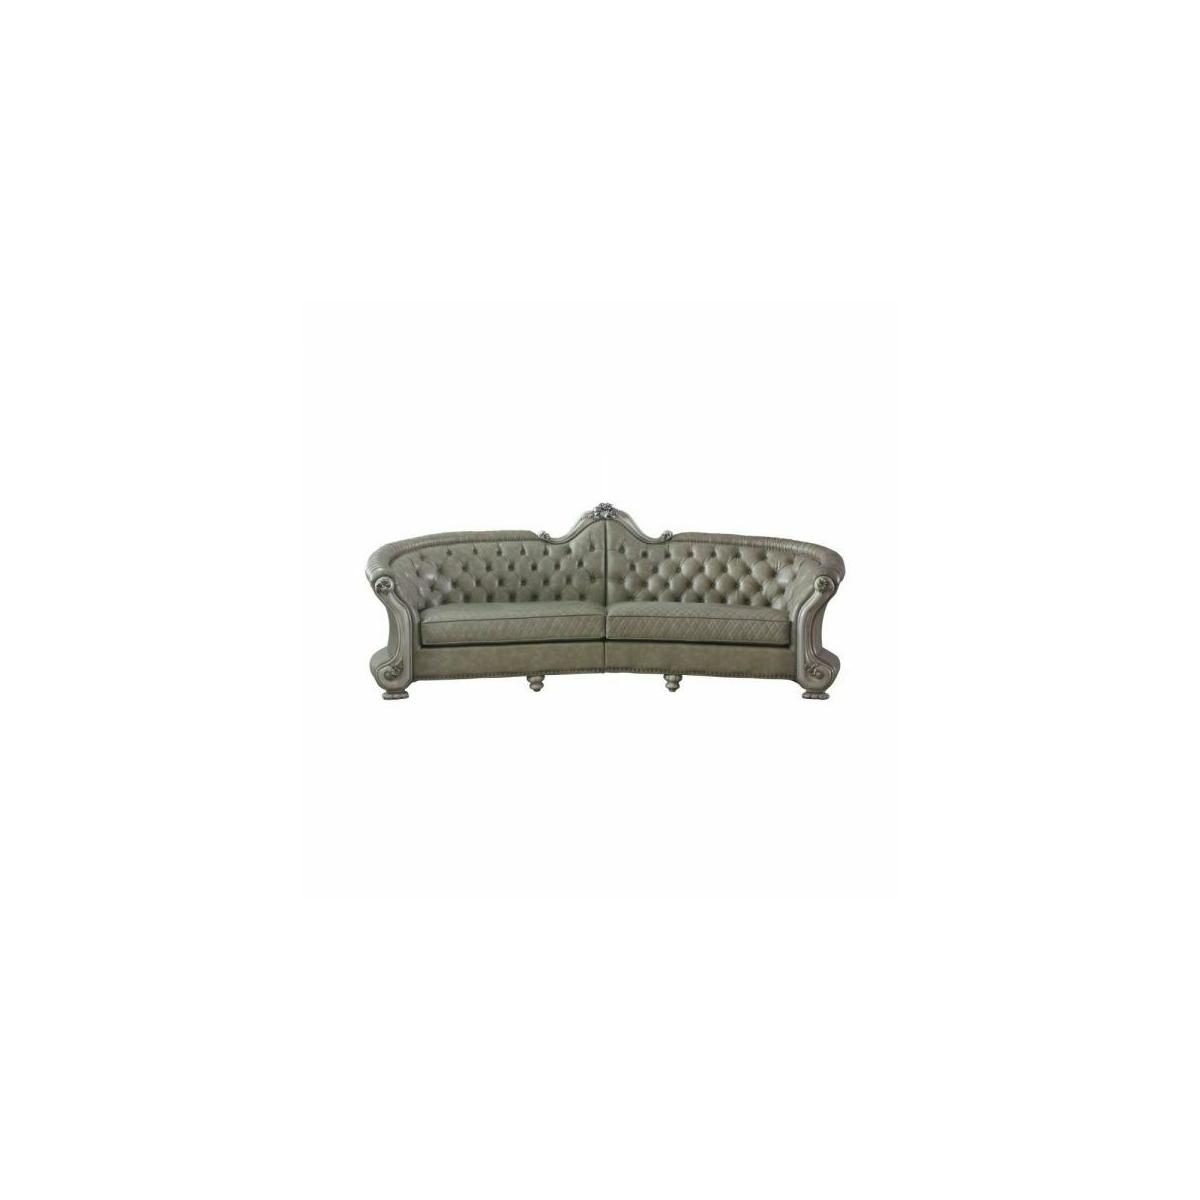 ACME Dresden Sofa - 58170 - Traditional, Vintage - PU, Frame: Wood (Solid Wood, Ply), Poly-Resin (Fiberglass) - Vintage Bone White and PU